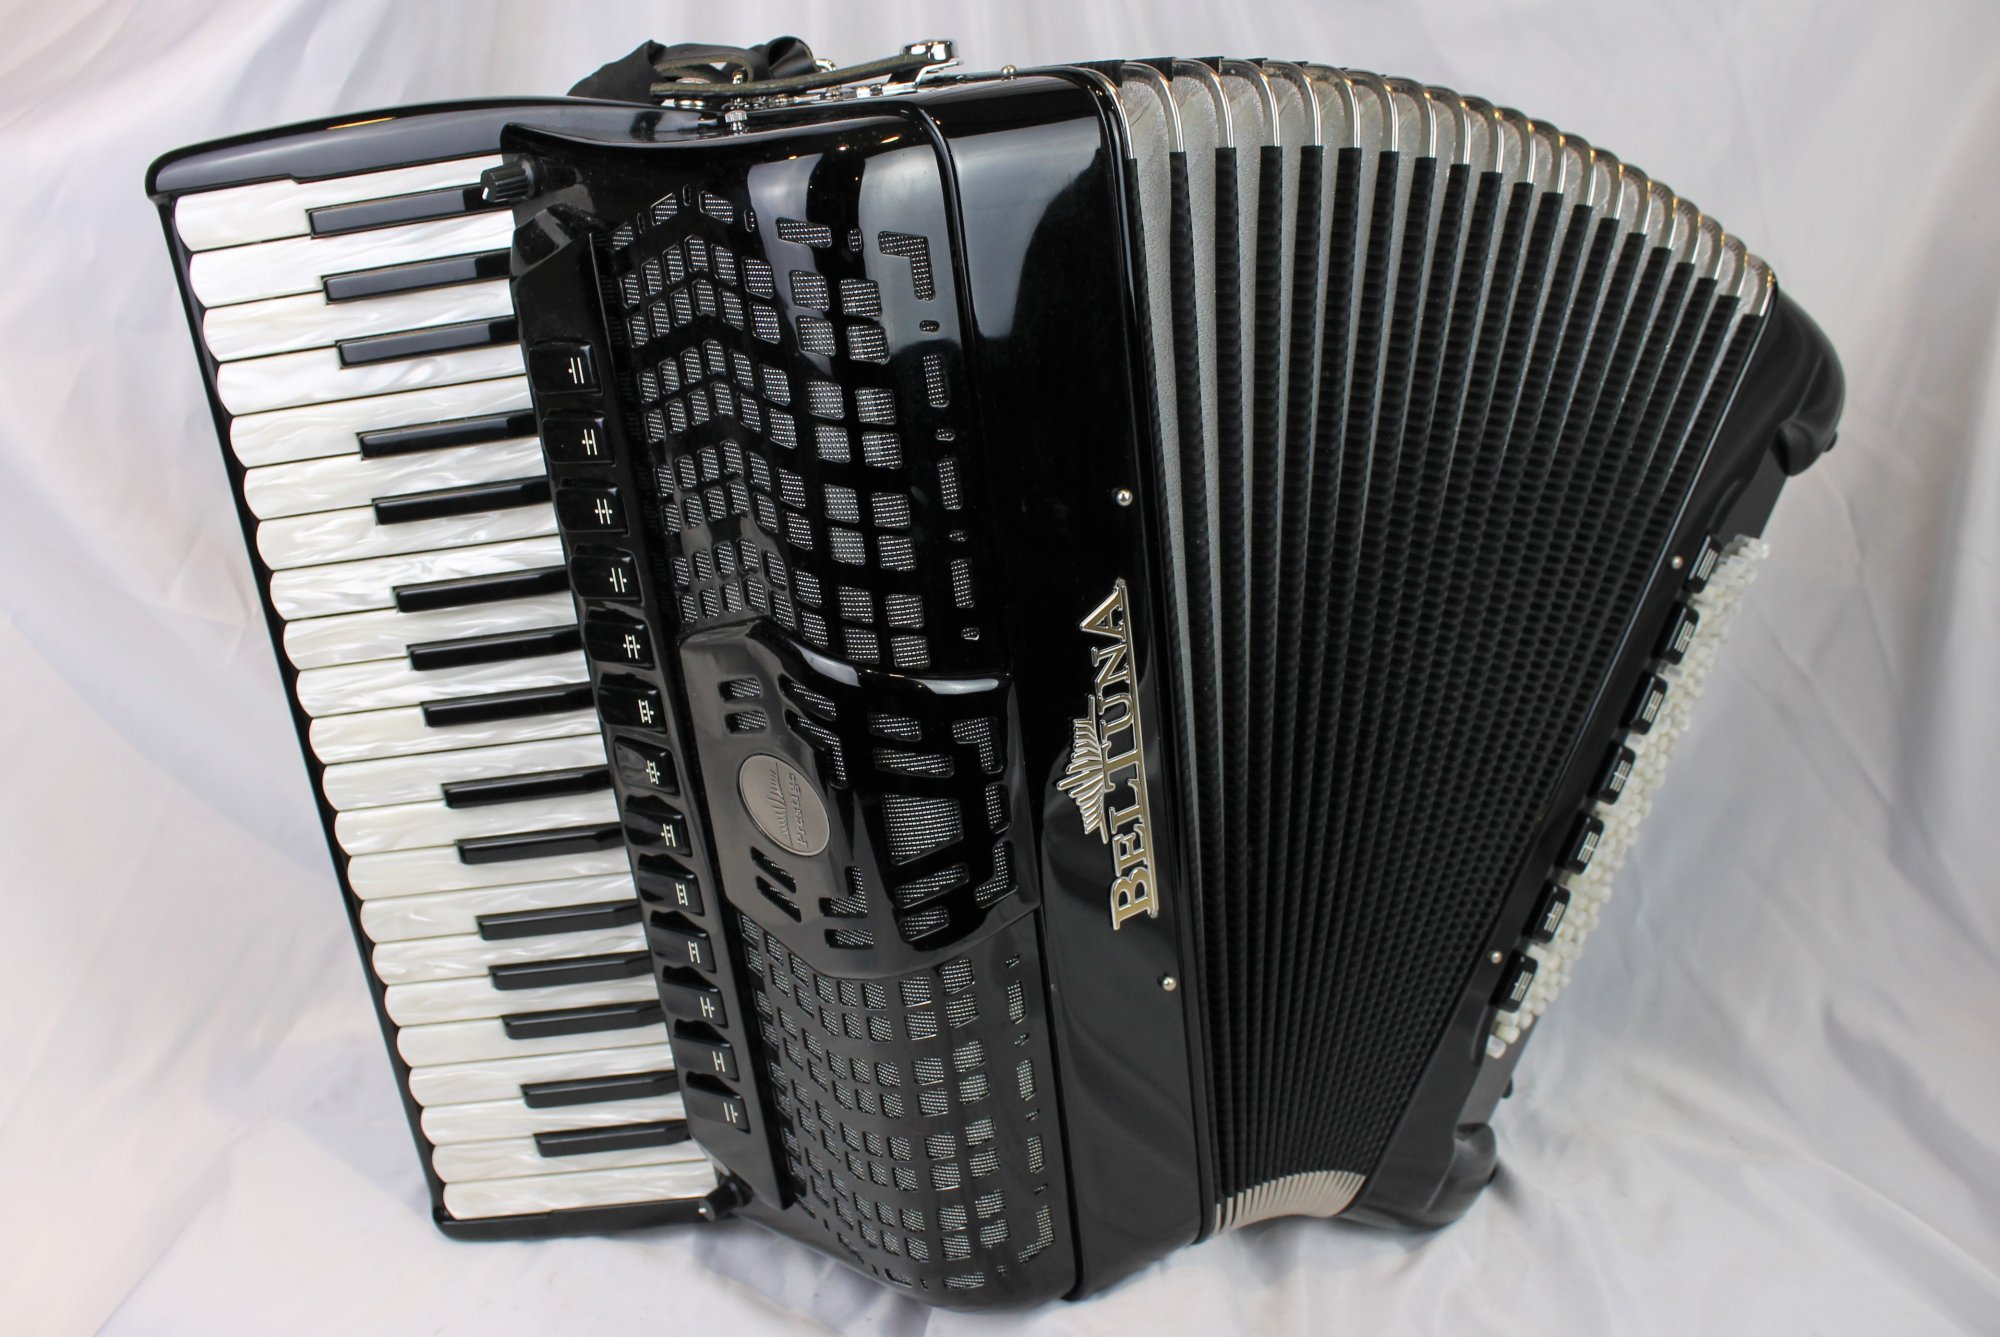 3910 - Certified Pre-Owned Black Beltuna Prestige V Piano Accordion LMMMH 37 96